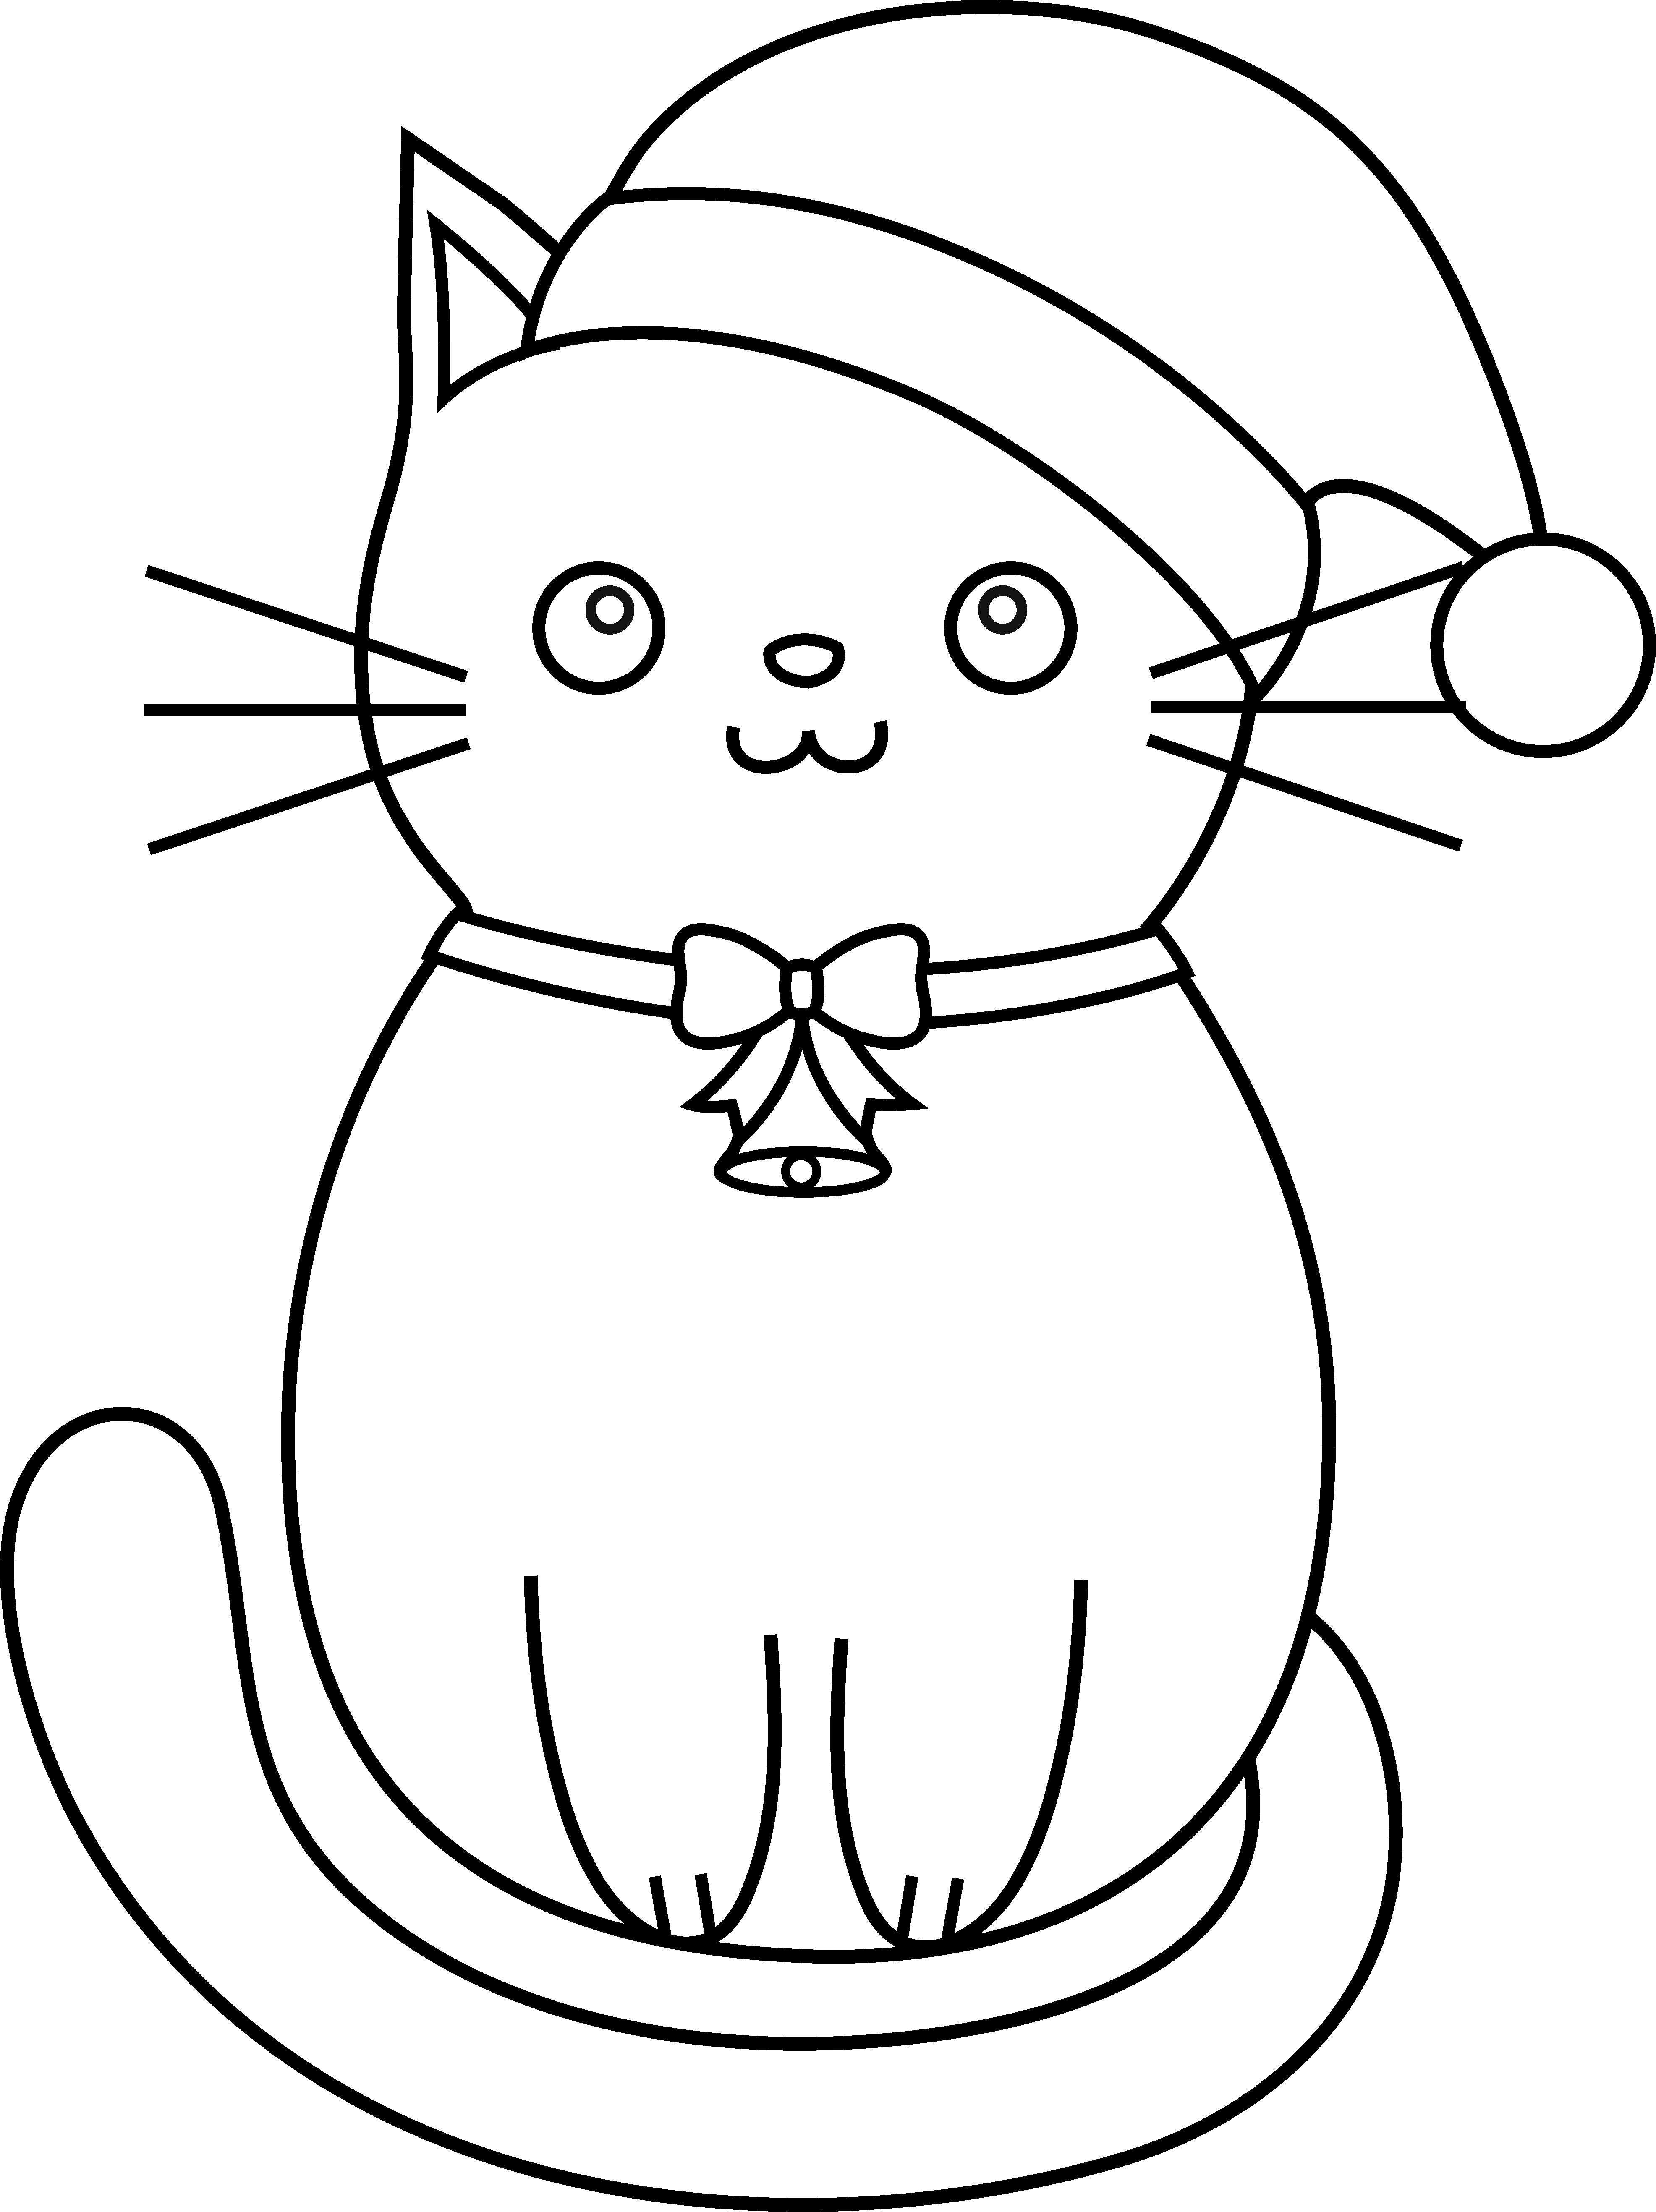 cats pictures to color cat to print for free rainbow cat cats kids coloring pages pictures to color cats